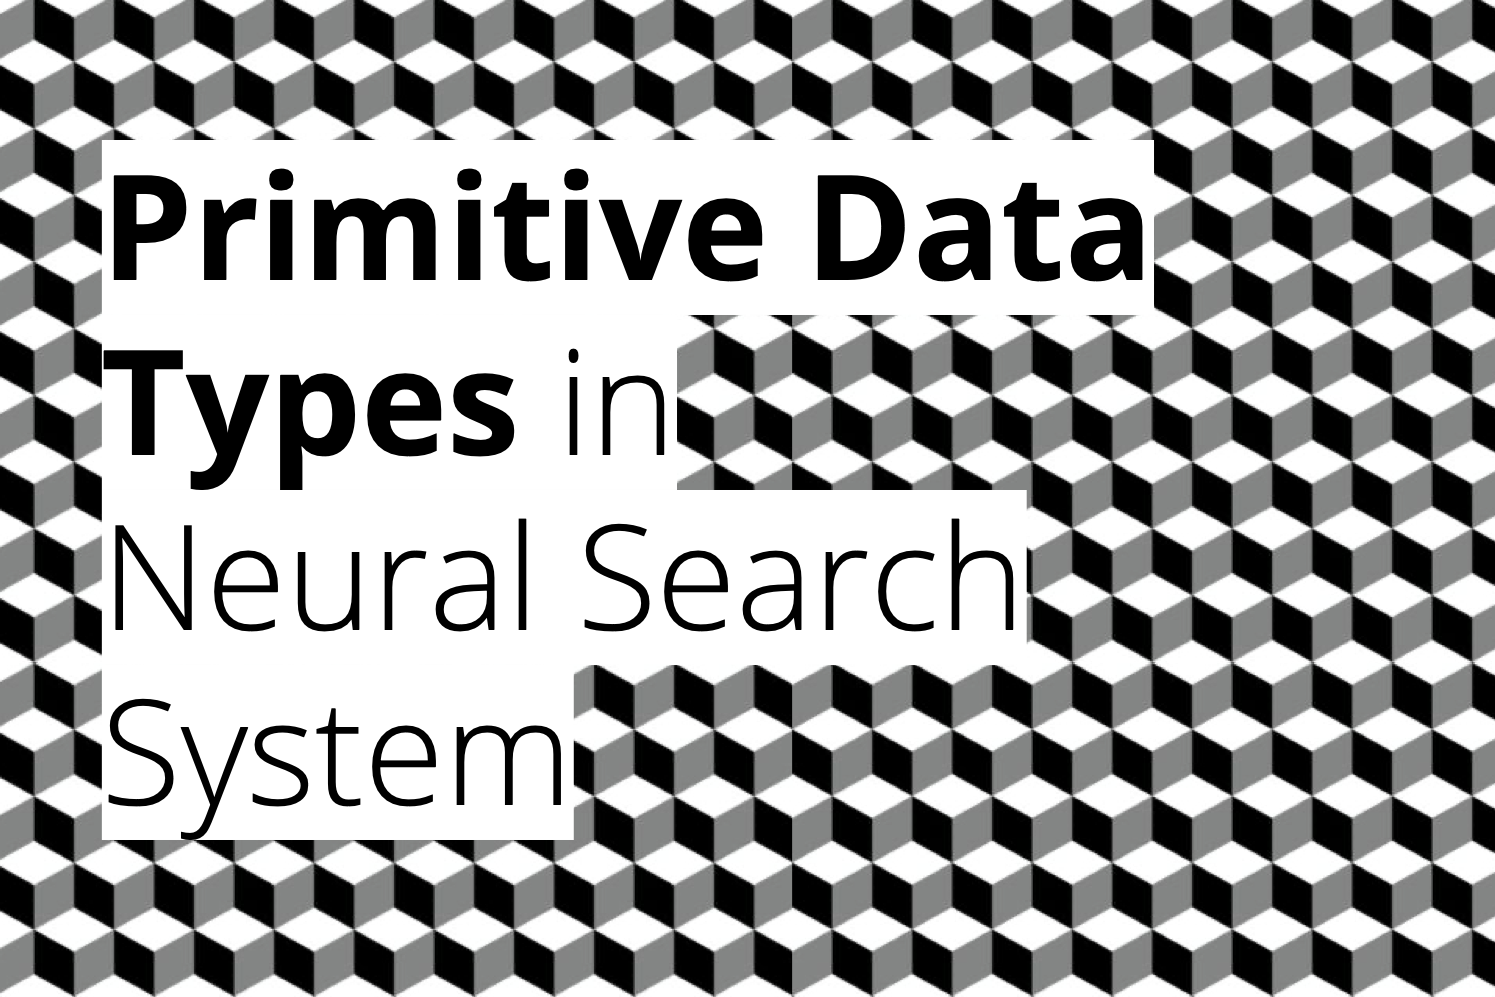 Primitive Data Types in Neural Search System